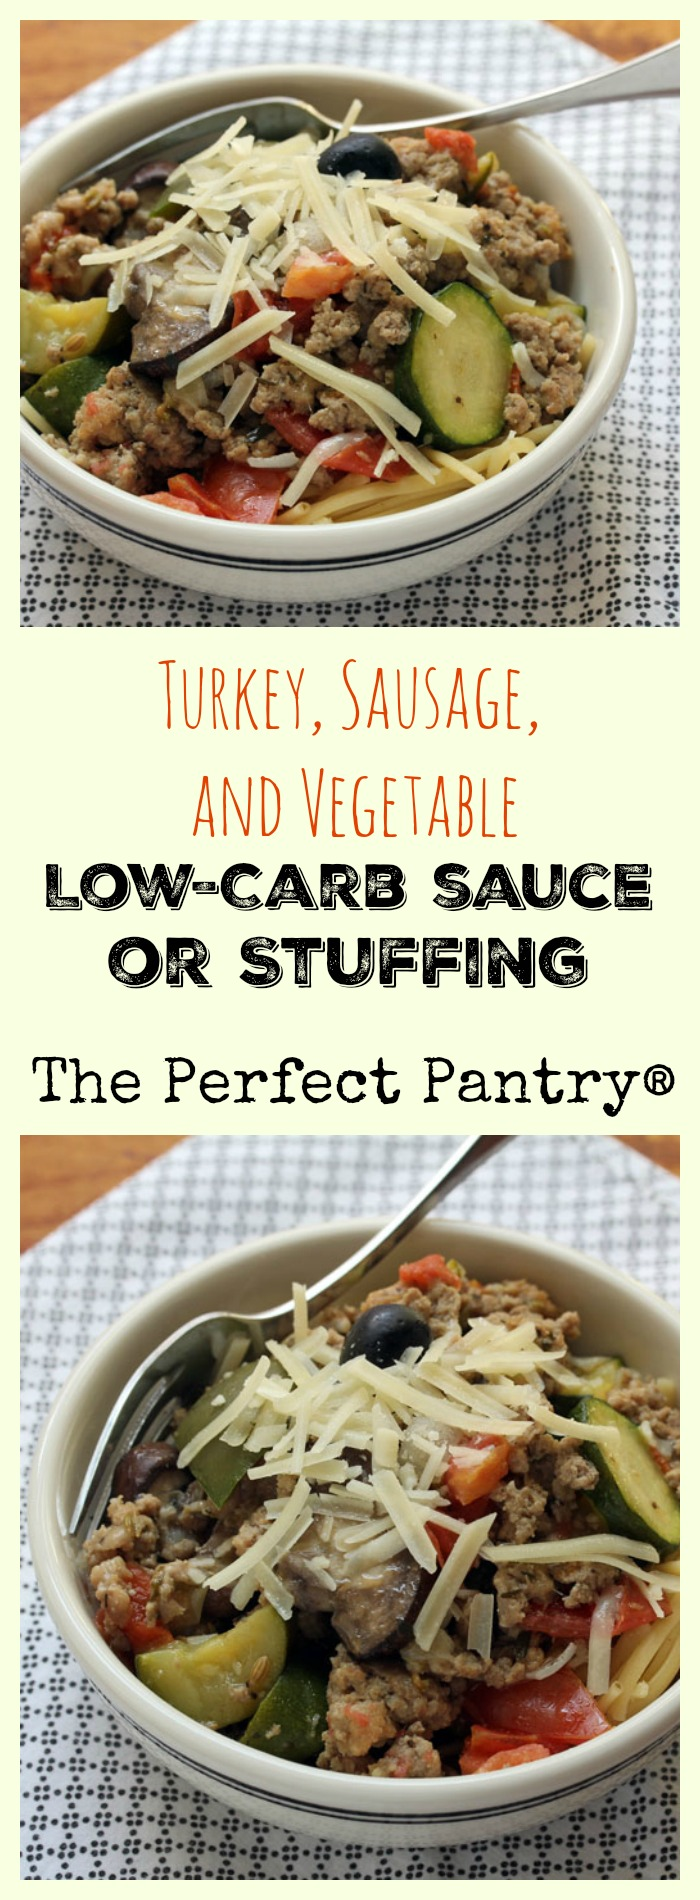 Turkey, sausage, and vegetable low-carb sauce makes a great stuffing for zucchini boats or peppers. ThePerfectPantry.com